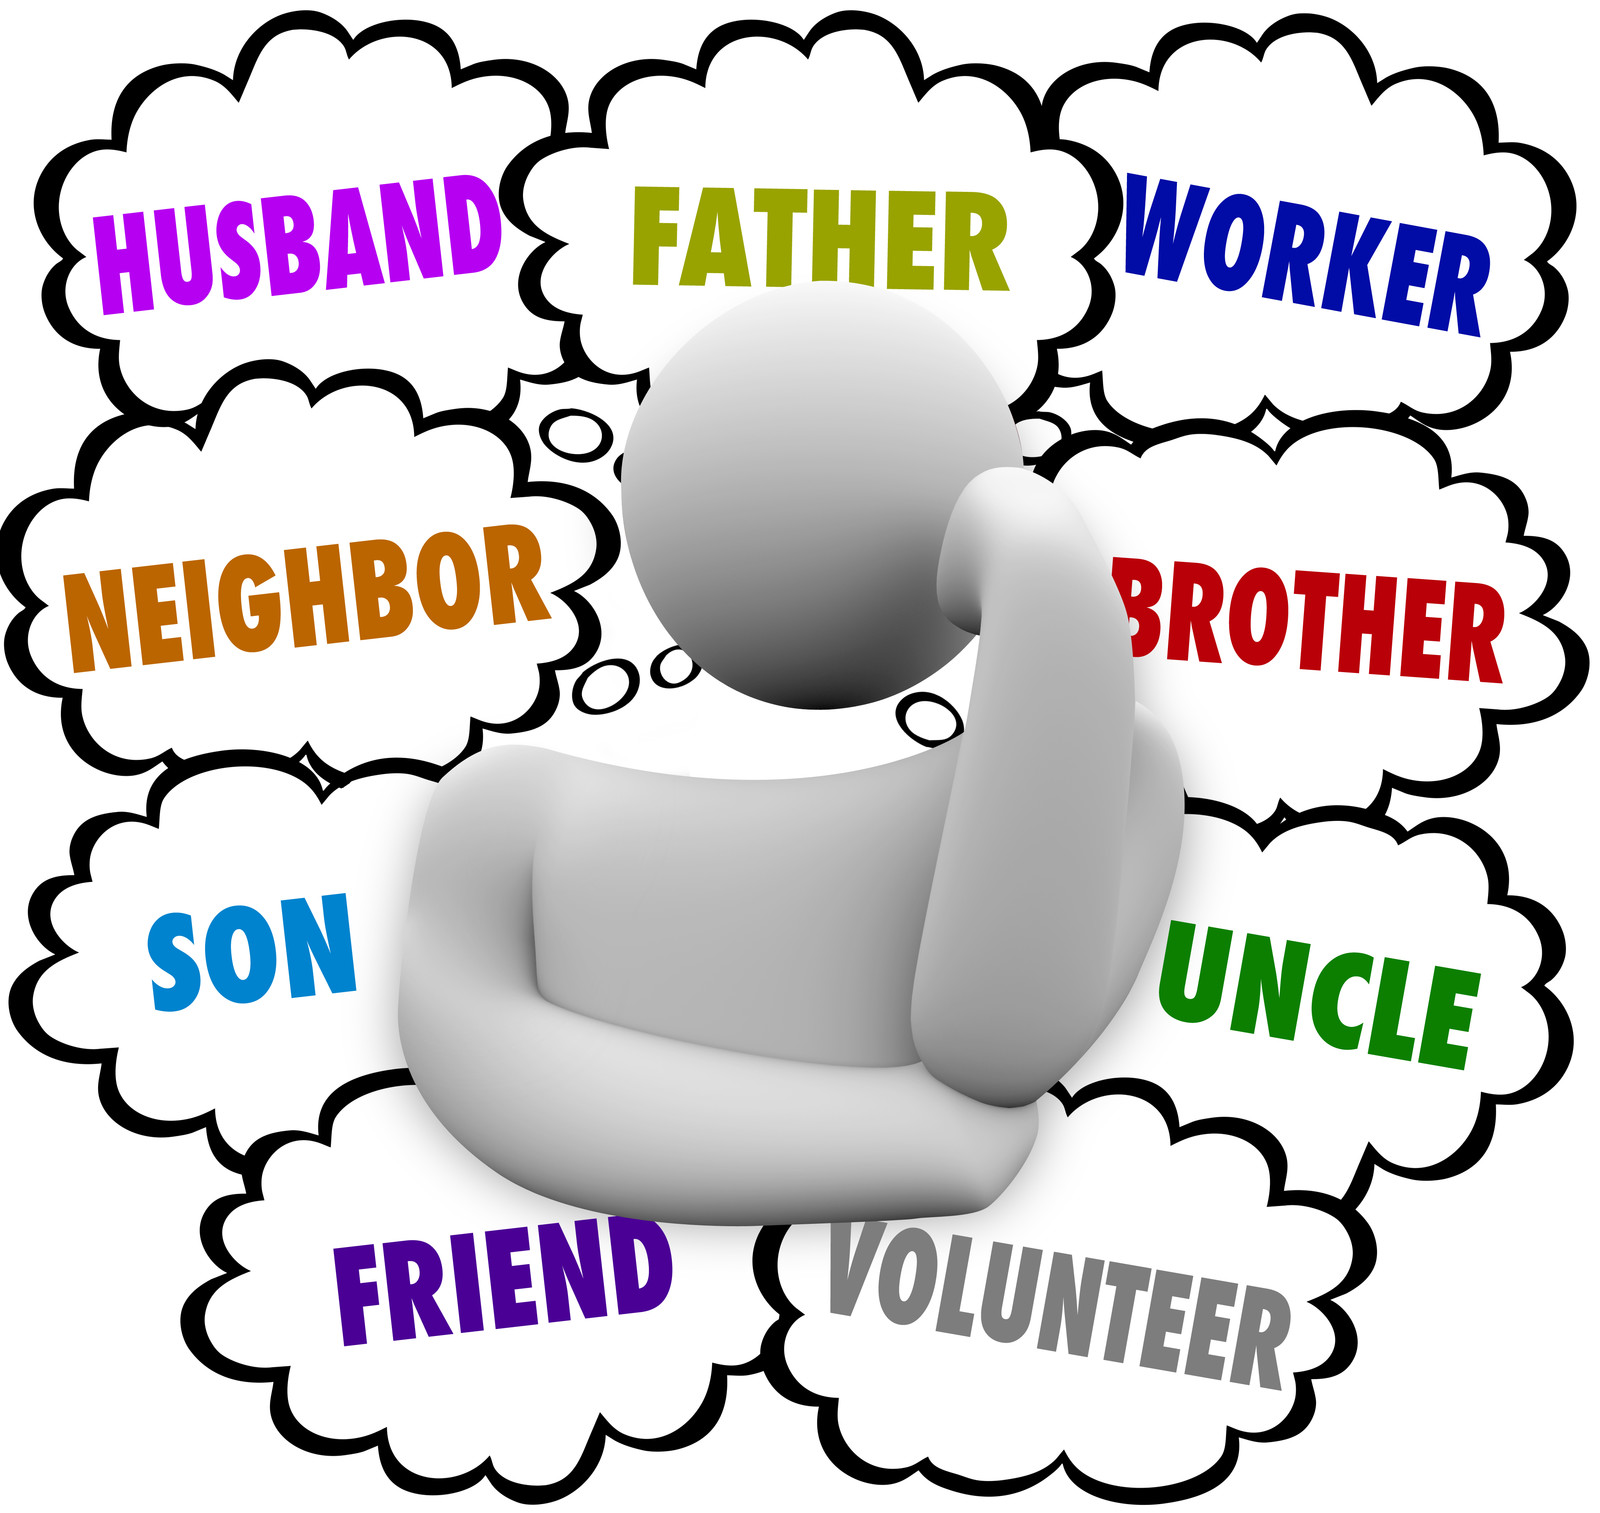 word cloud with roles a man plays in life including father, husband, brother, worker, uncle, volunteer, friend, neighbour, husband and son